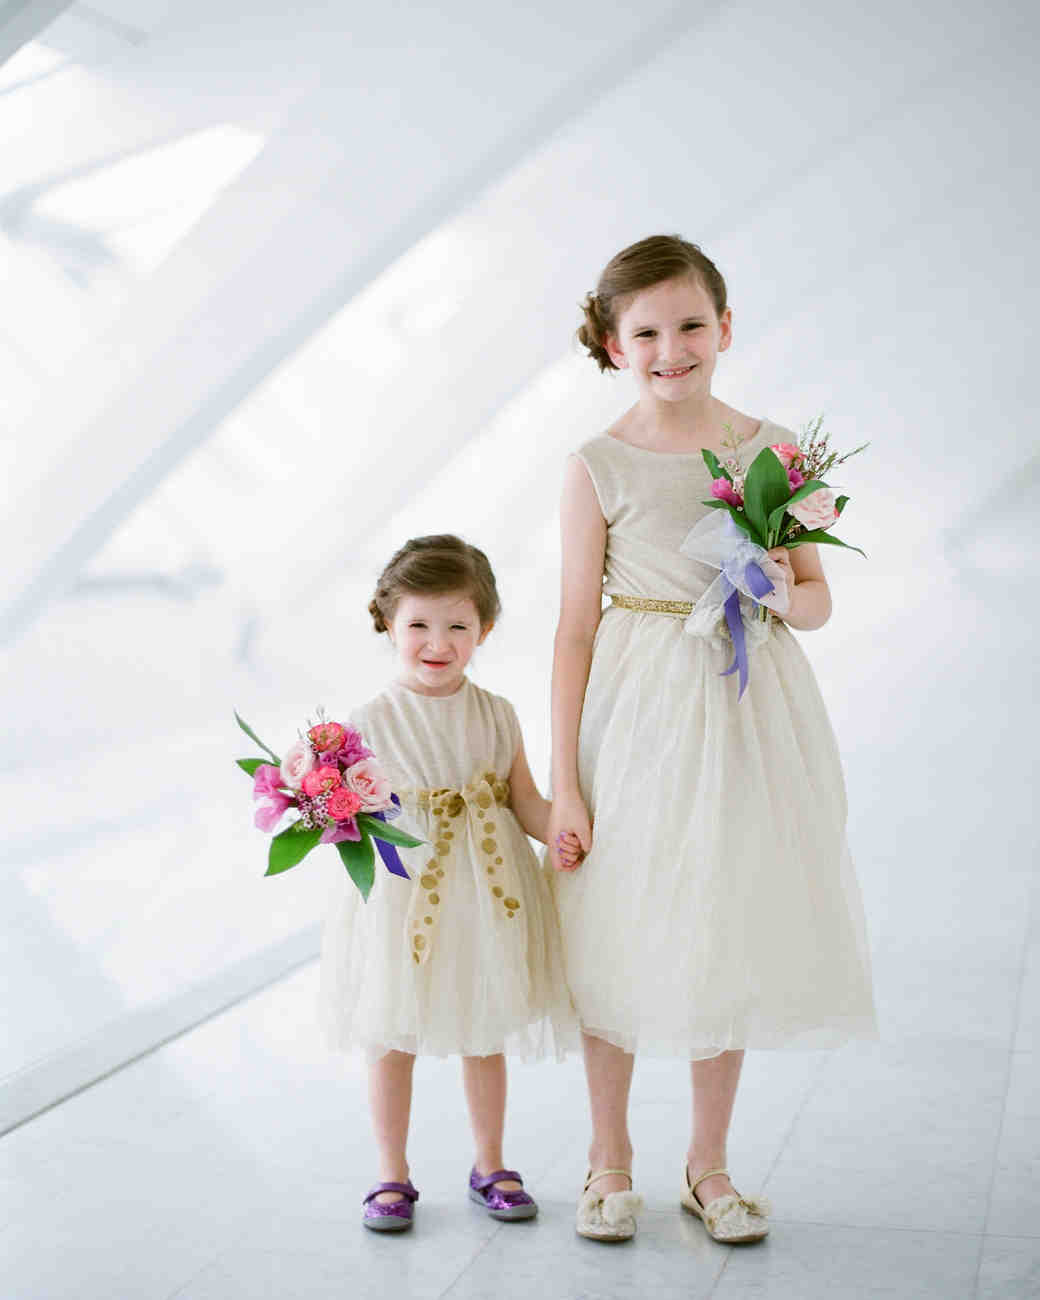 Adorable Hairstyle Ideas for Your Flower Girls | Martha Stewart Weddings